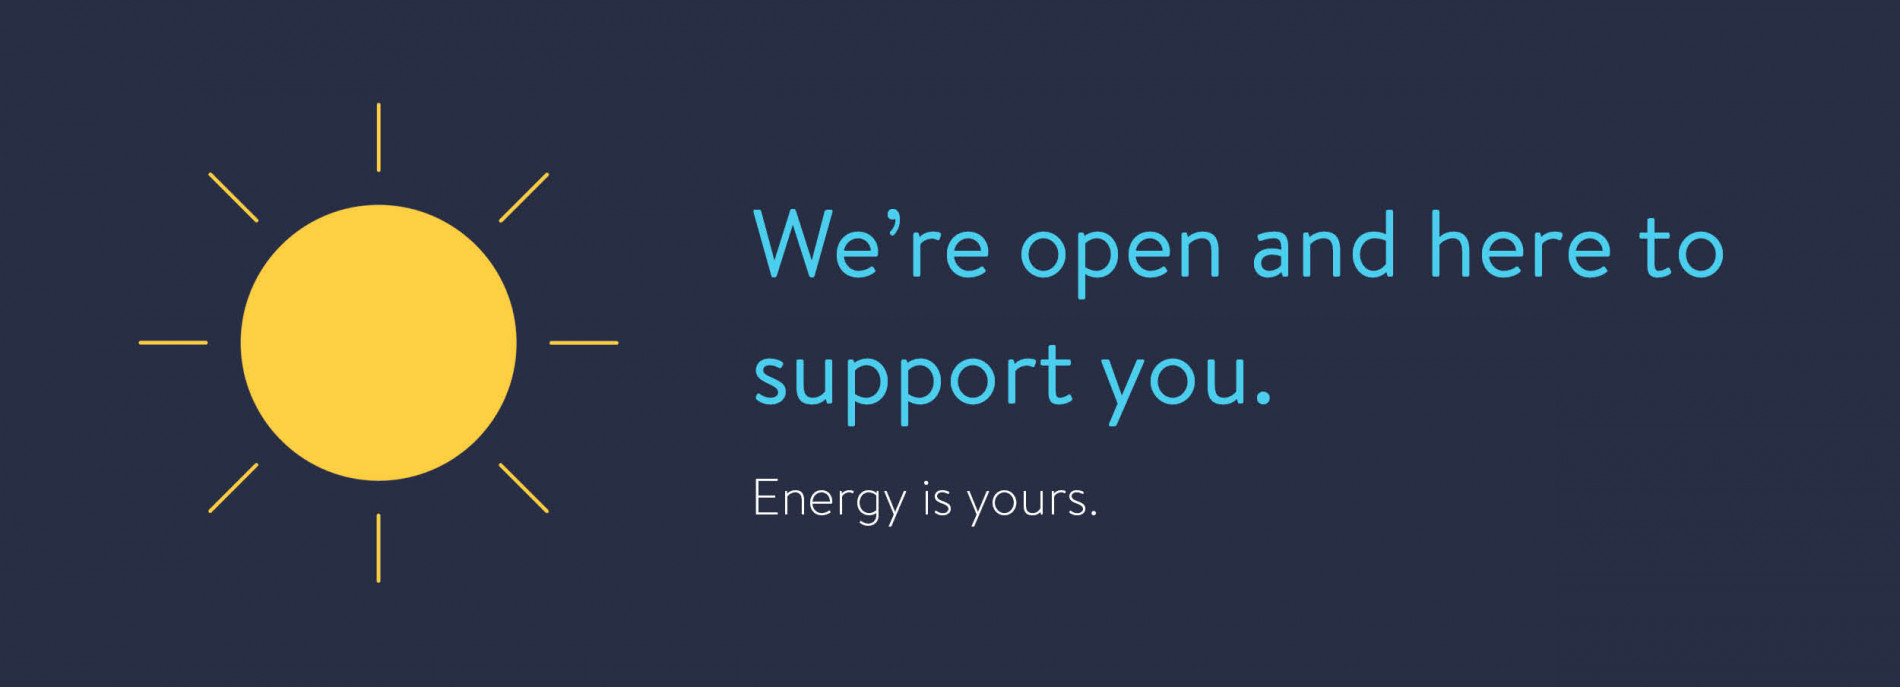 We're open and here to support you!